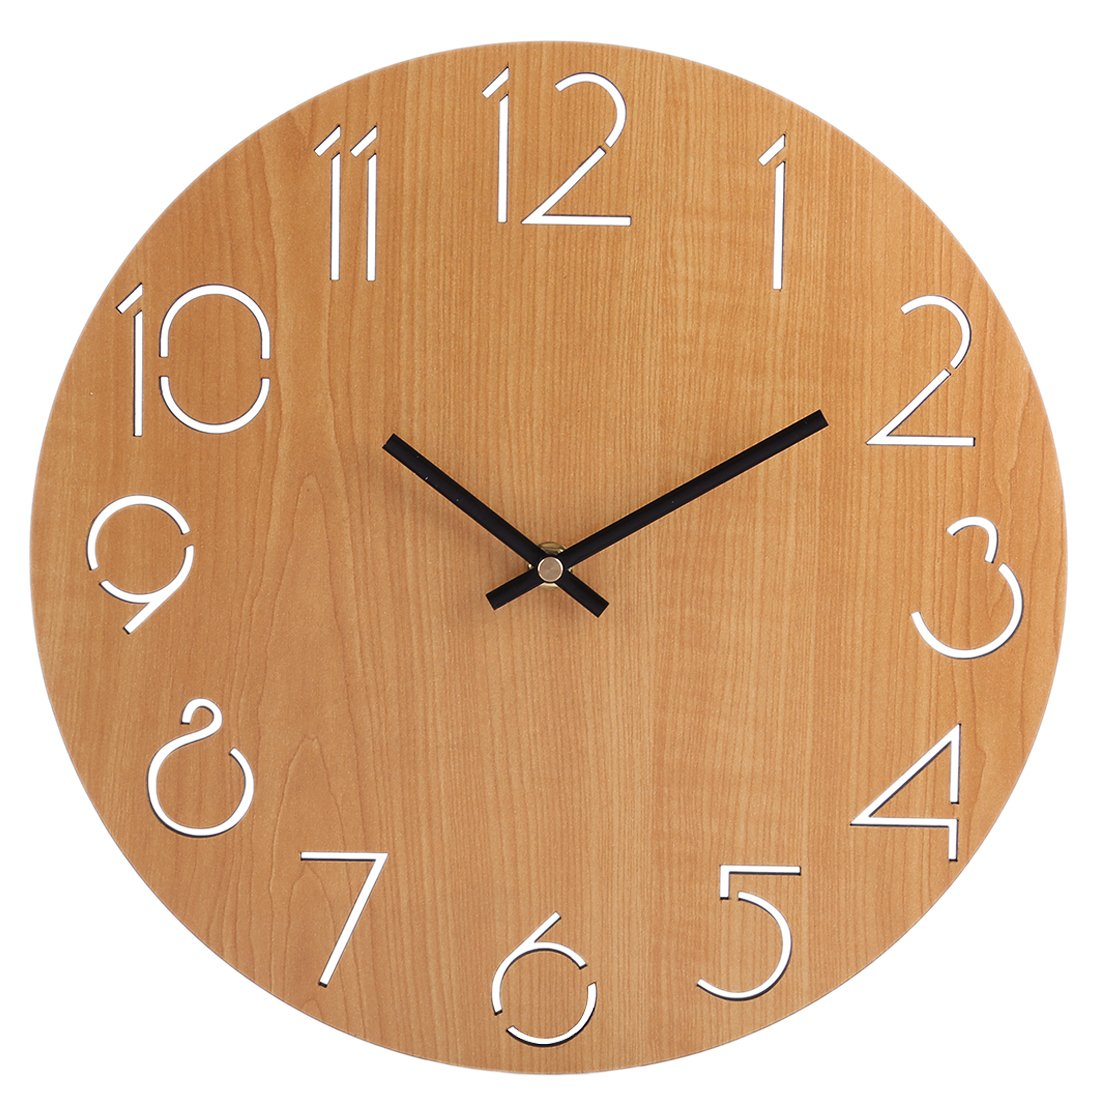 Wall Clock Silent, XSHION Wood Wall Clock Battery Operated Non Ticking 12 Inch Decorative Wall Clocks Arabic Numerals Modern Design (Light Brown)